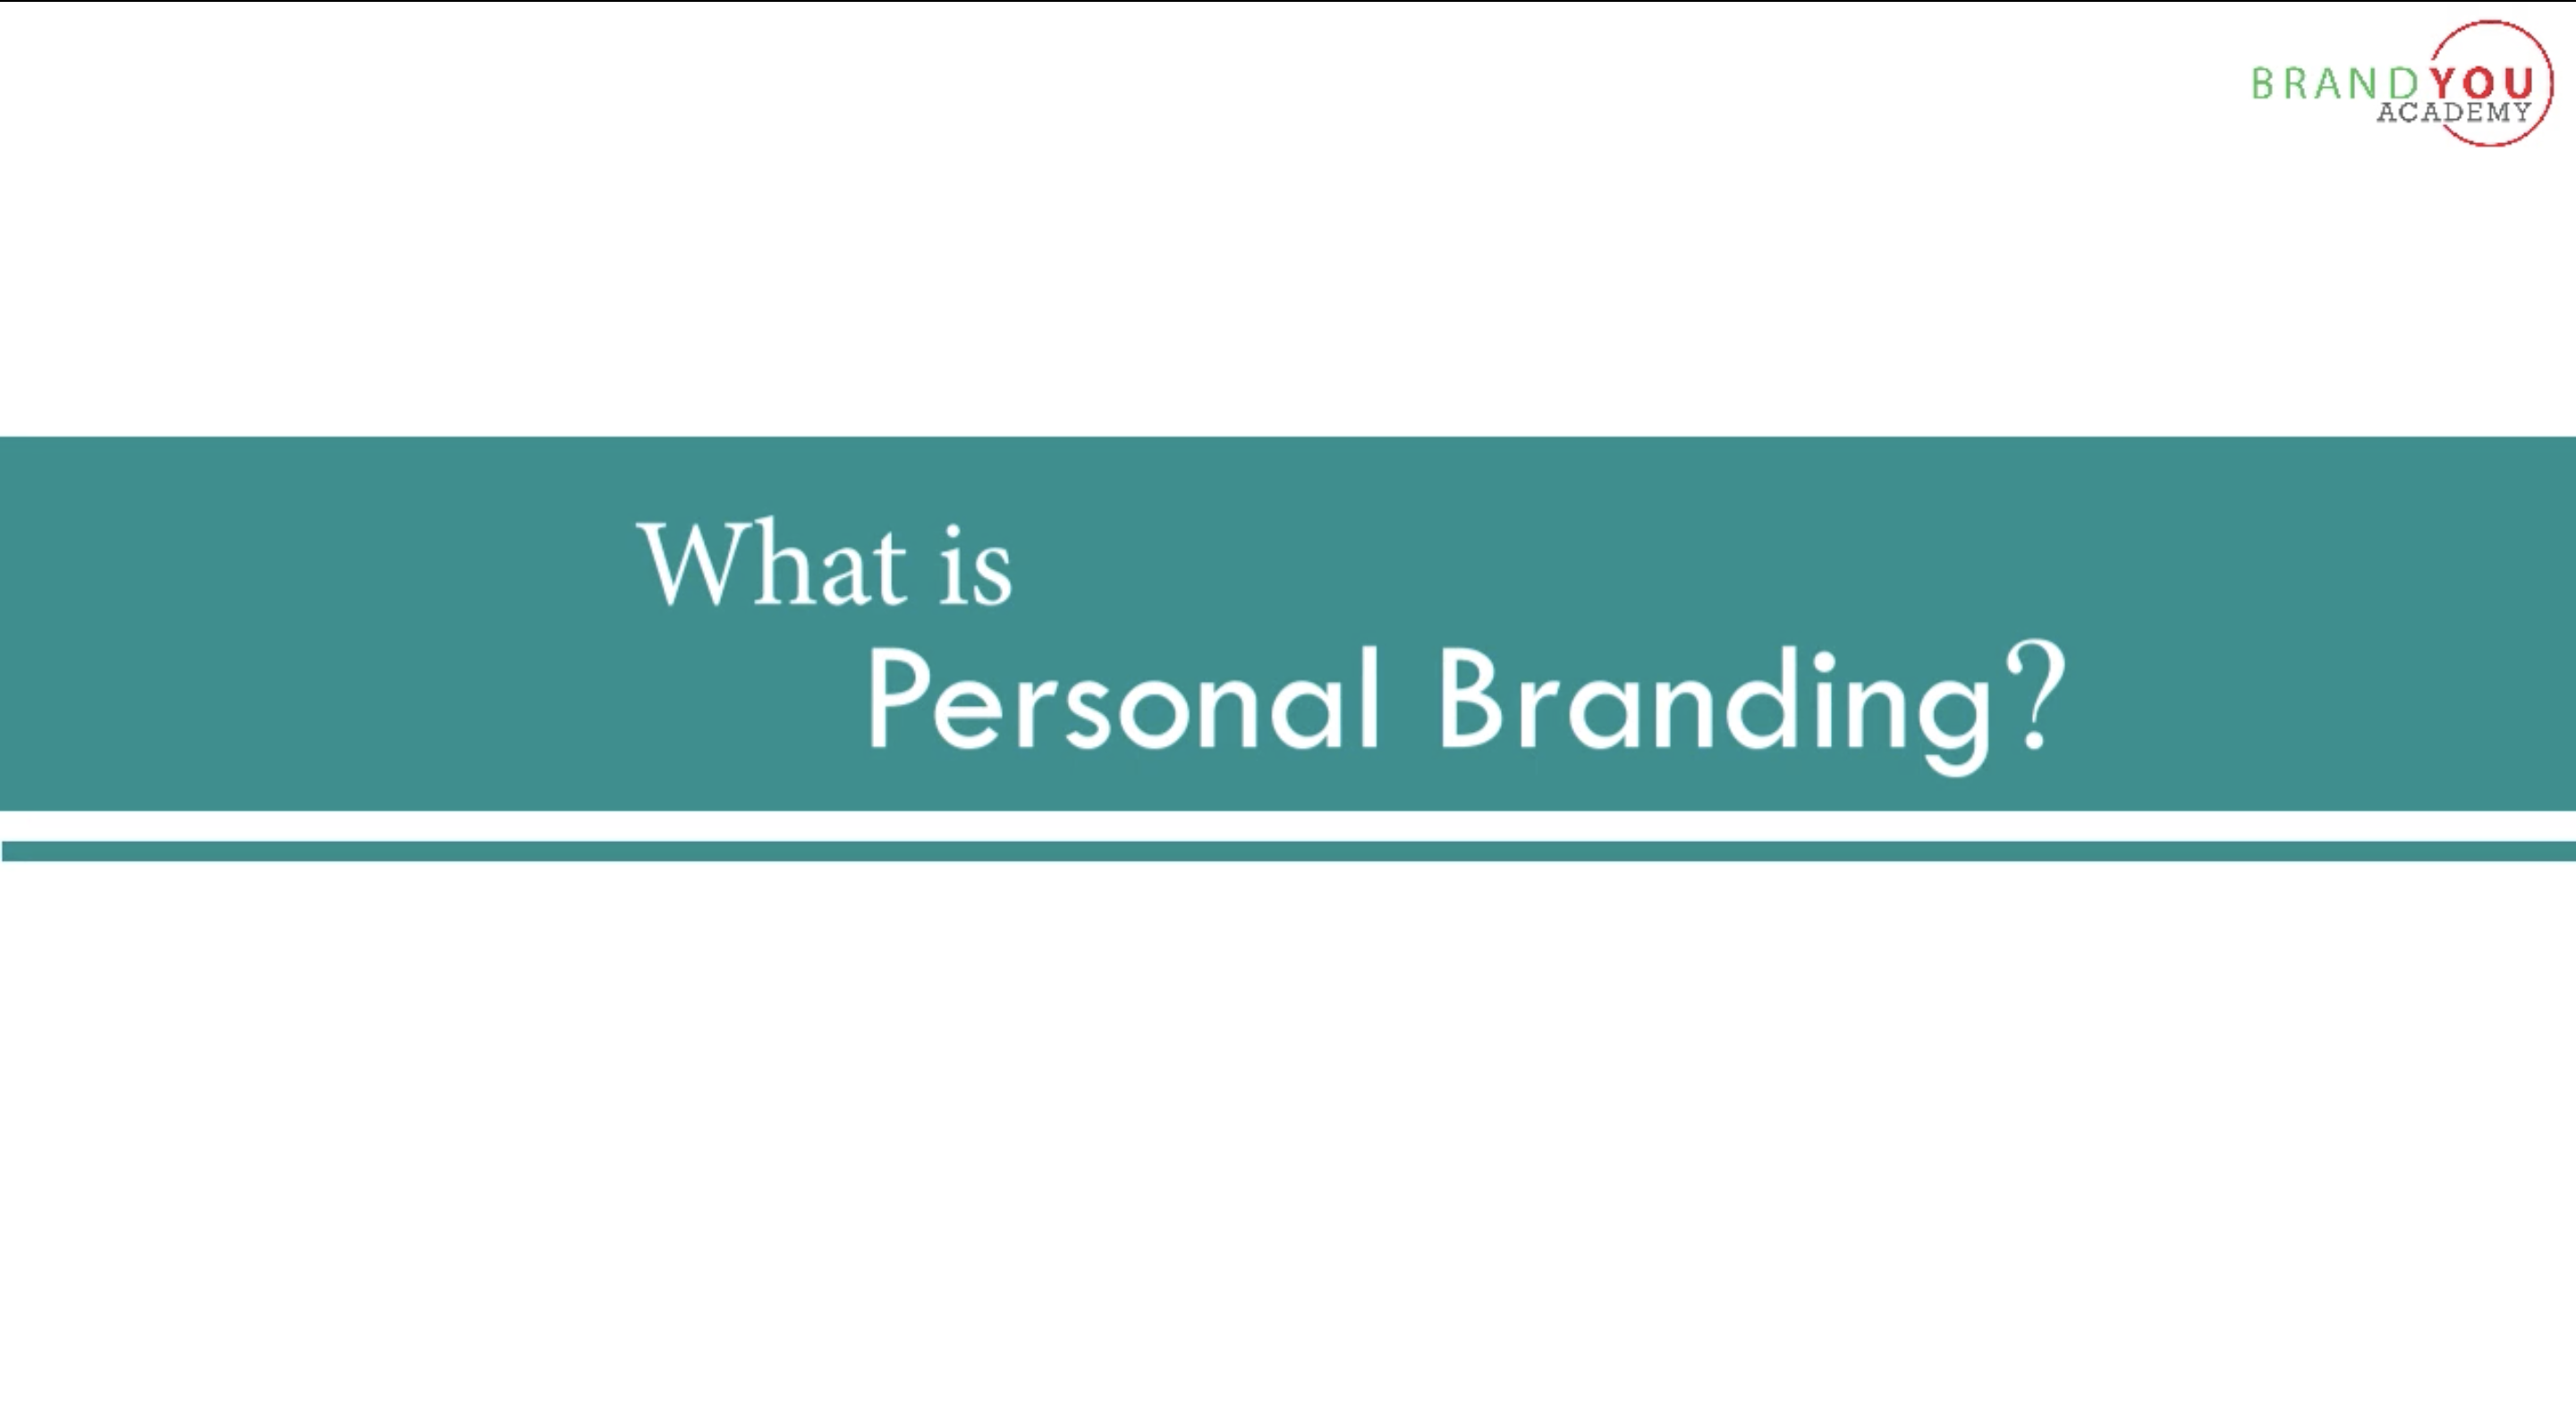 What is Personal Branding? - Brand You Academy